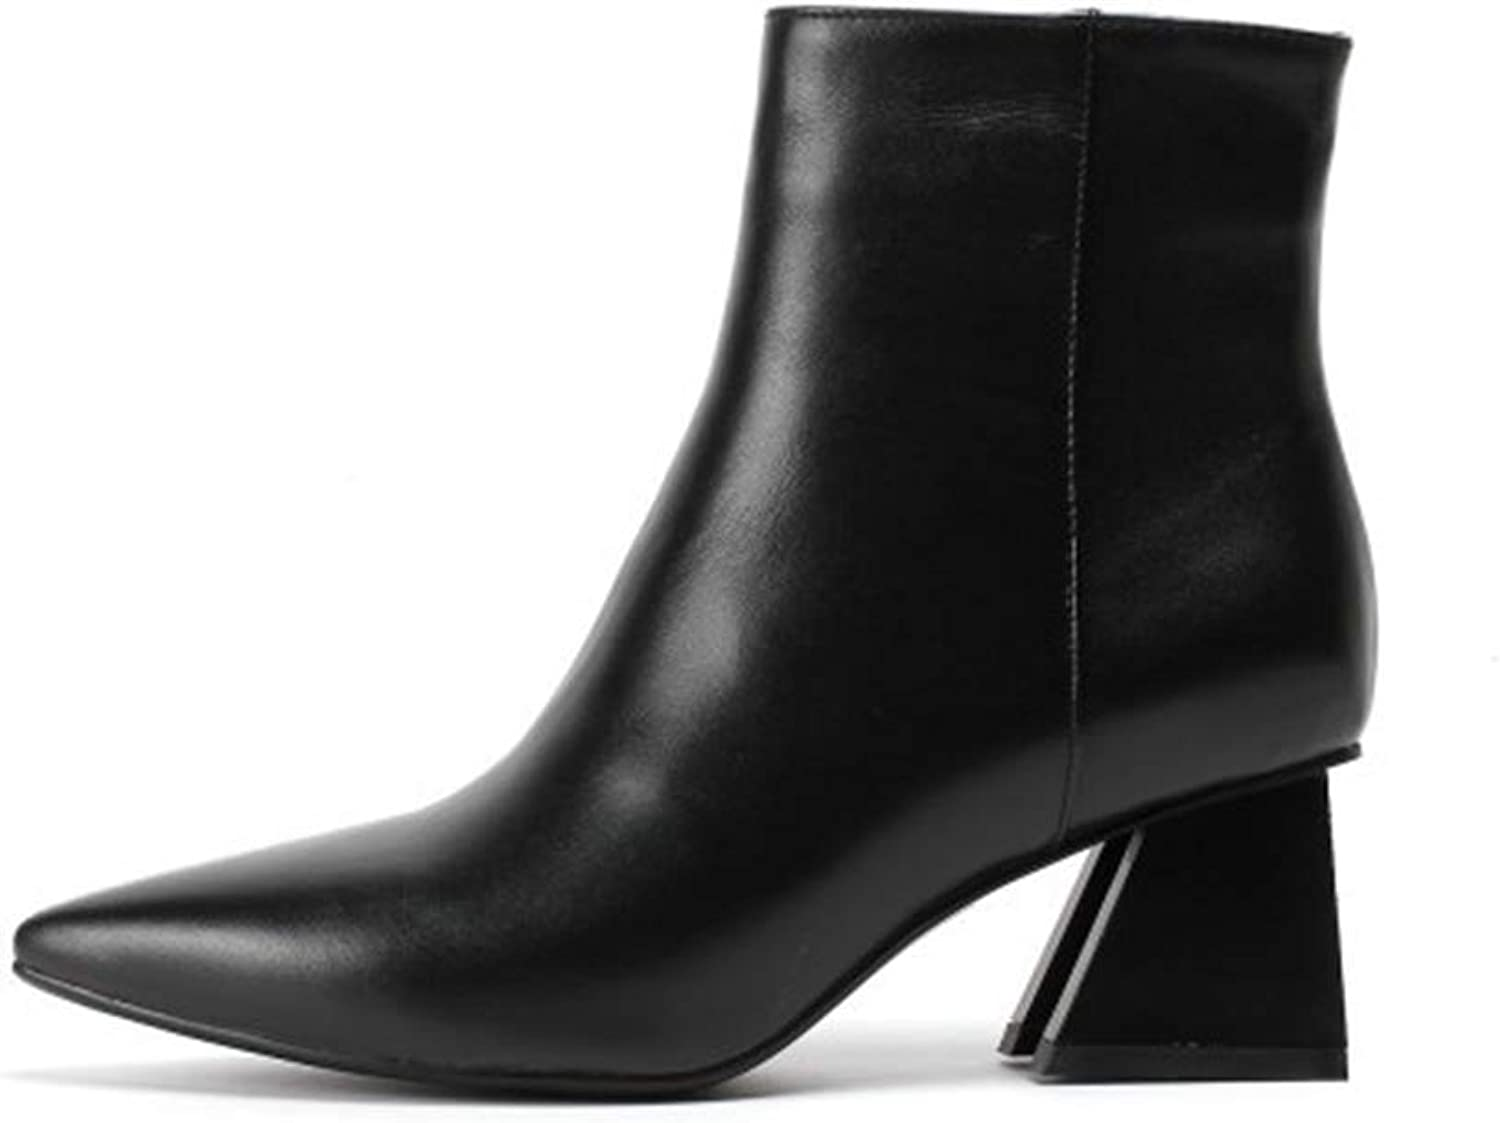 Women's Leather Boots, Pointed Toe Rough High Heels Winter Fashion Boots Mid-Calf Boots Zipper Beige Black (color   A, Size   39)